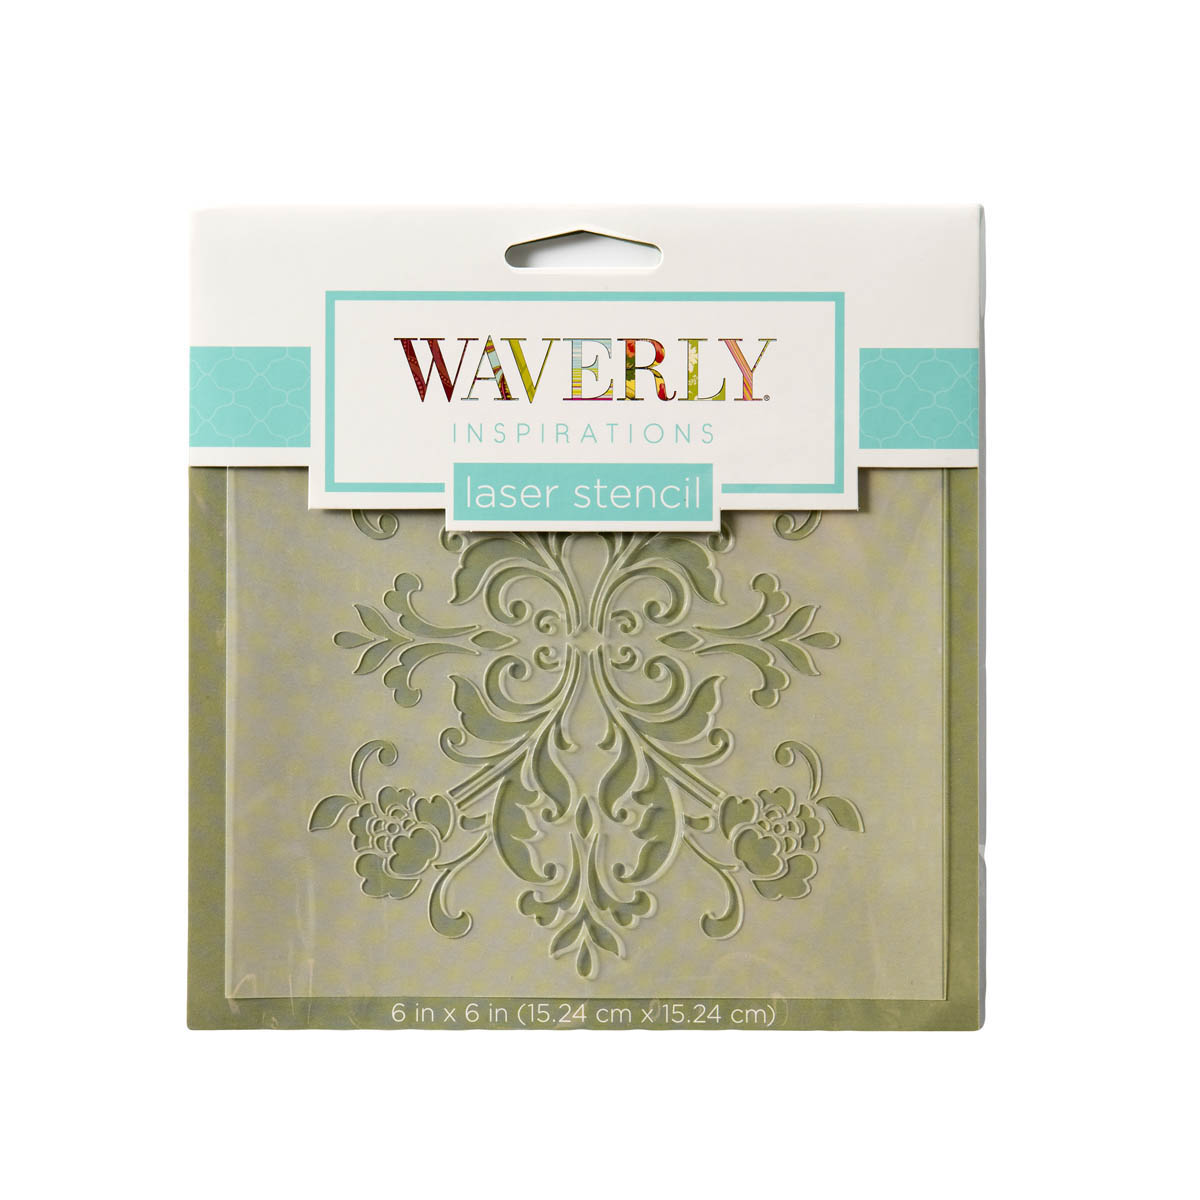 Waverly ® Inspirations Laser Stencils - Accent - Damask Floral, 6